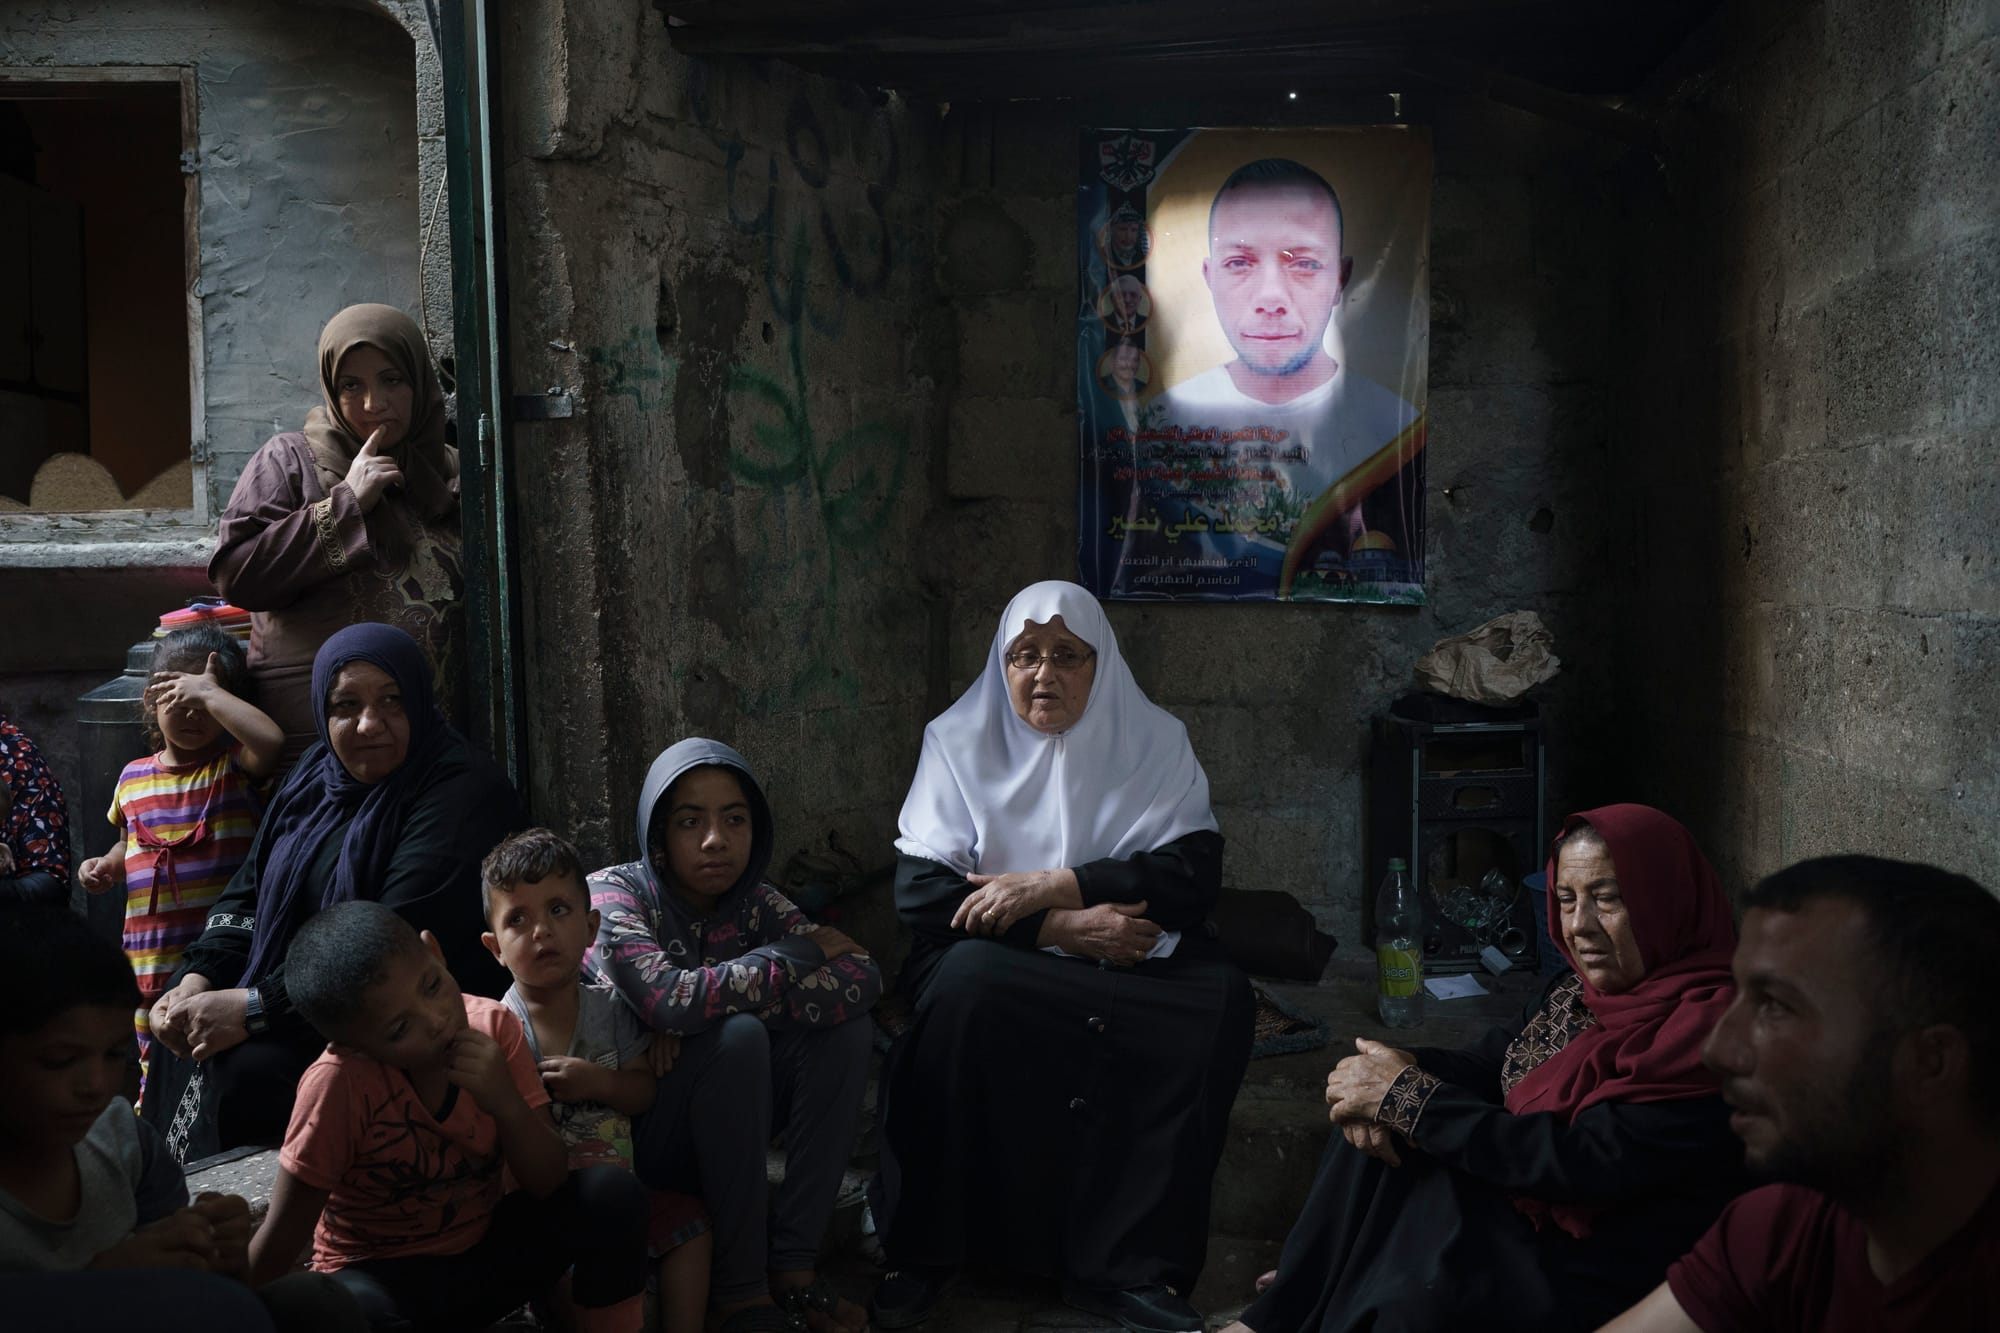 Around 10 members of a family sit on the floor of their home in Gaza. Above them is the poster of one of their relatives who died in a recent 11-day war between Gaza's Hamas rulers and Israel.